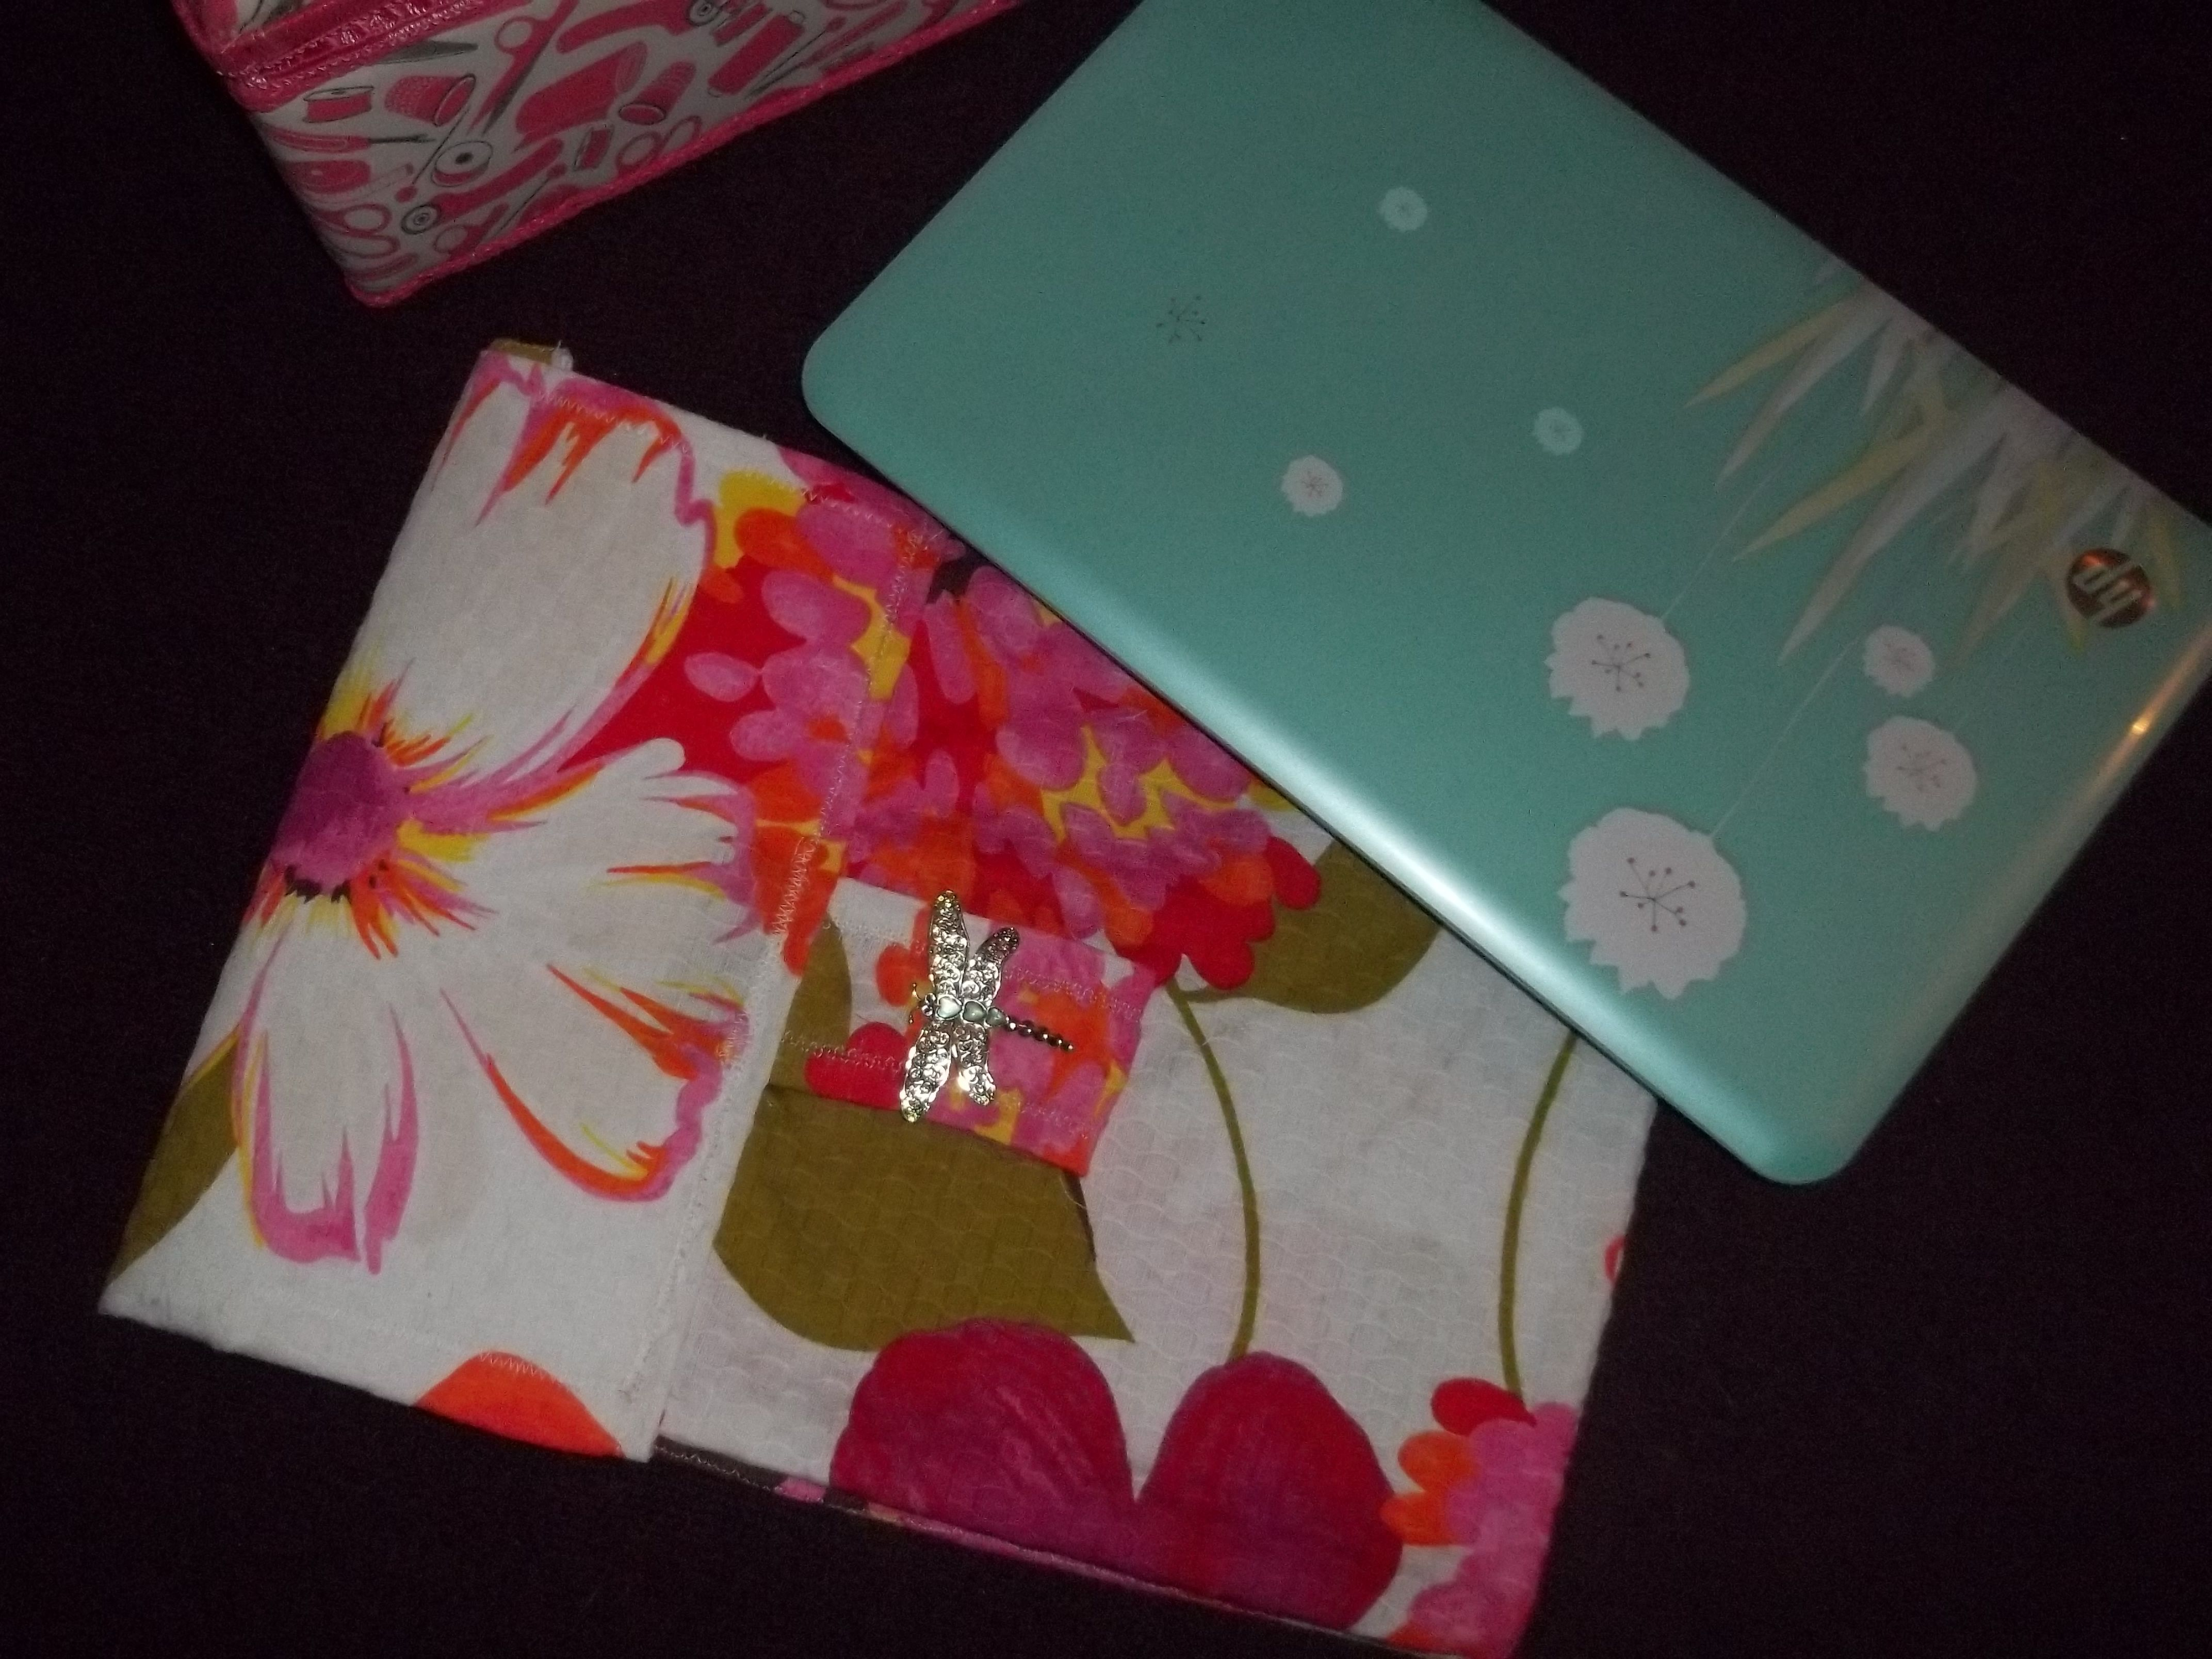 I made this cute lap top bag for my computer. I'm just learning to sew, I am proud